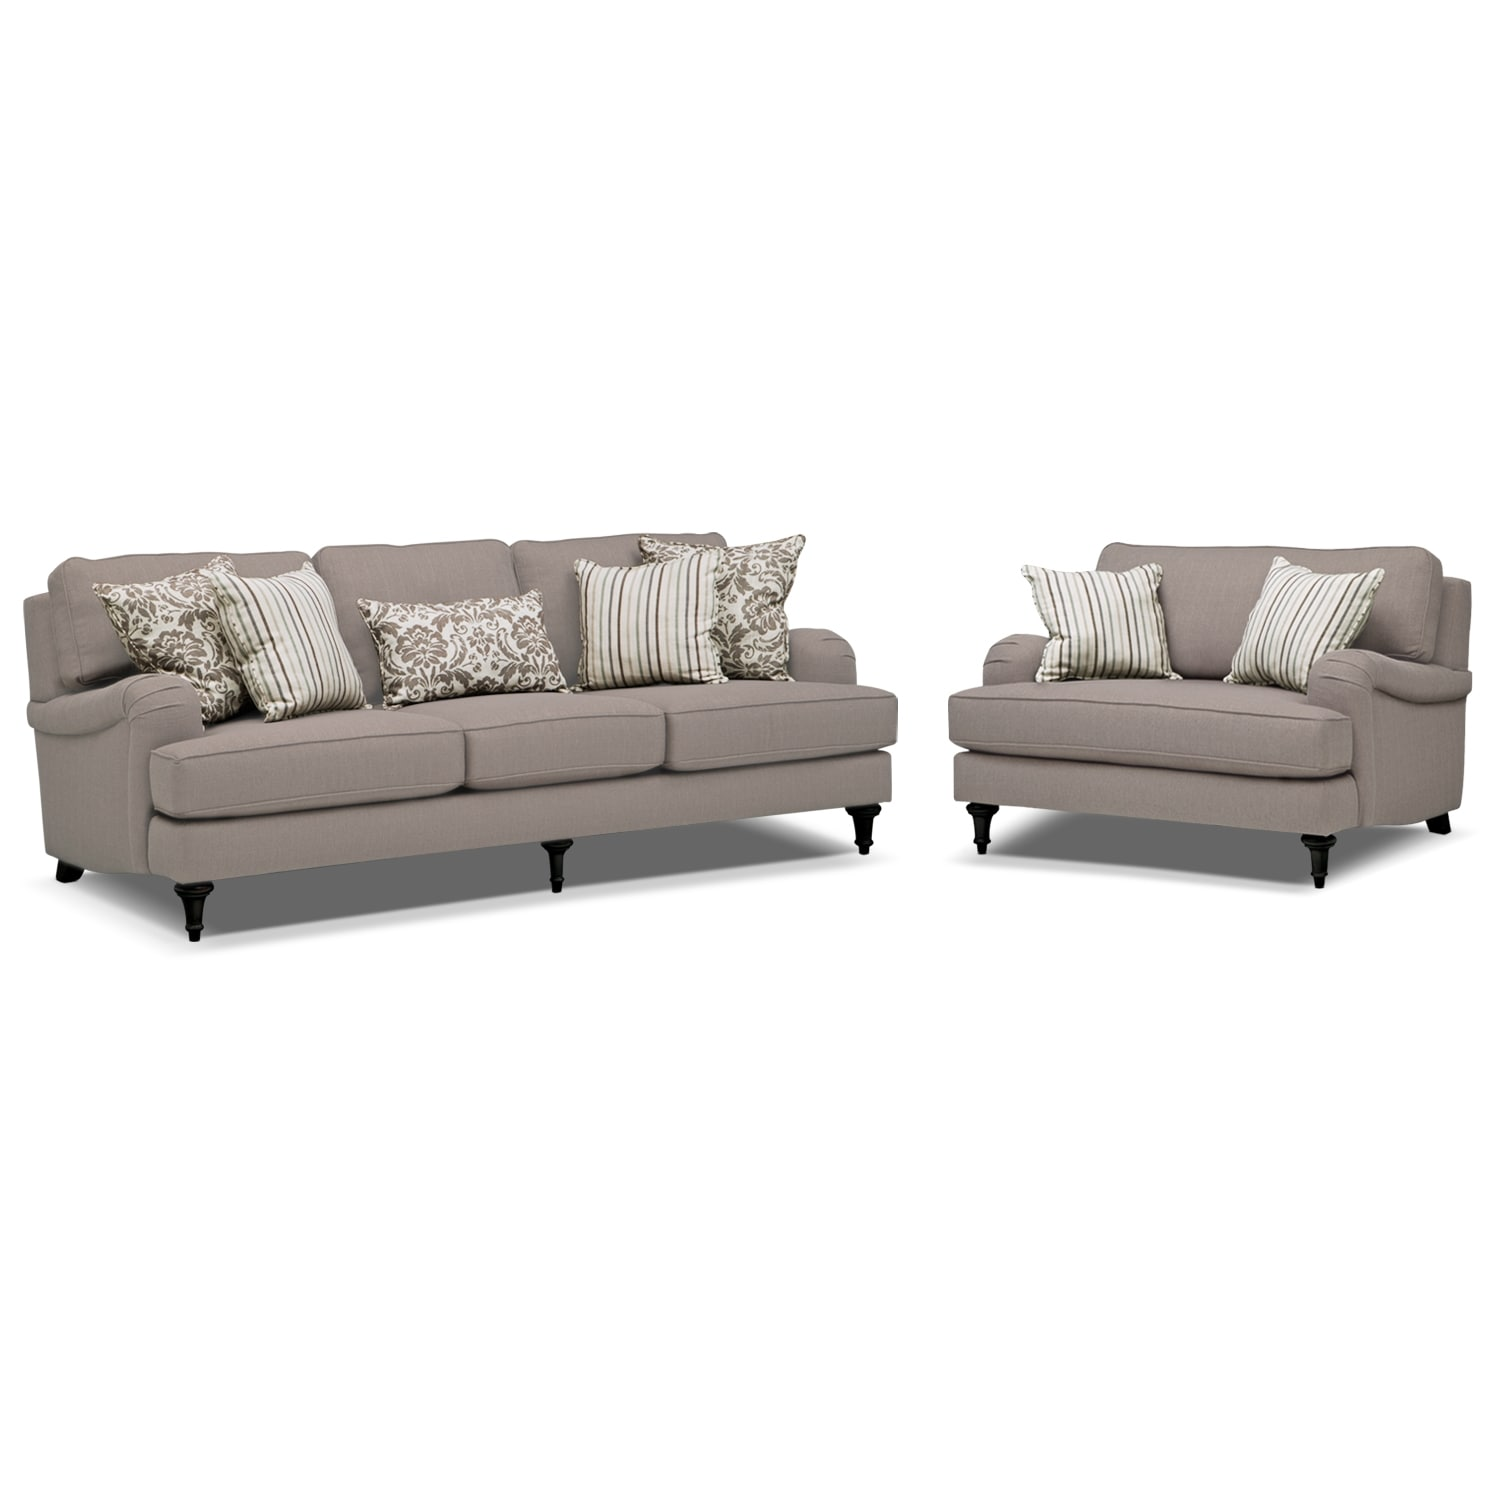 sofa and chairs green bungee chair candice a half set gray american